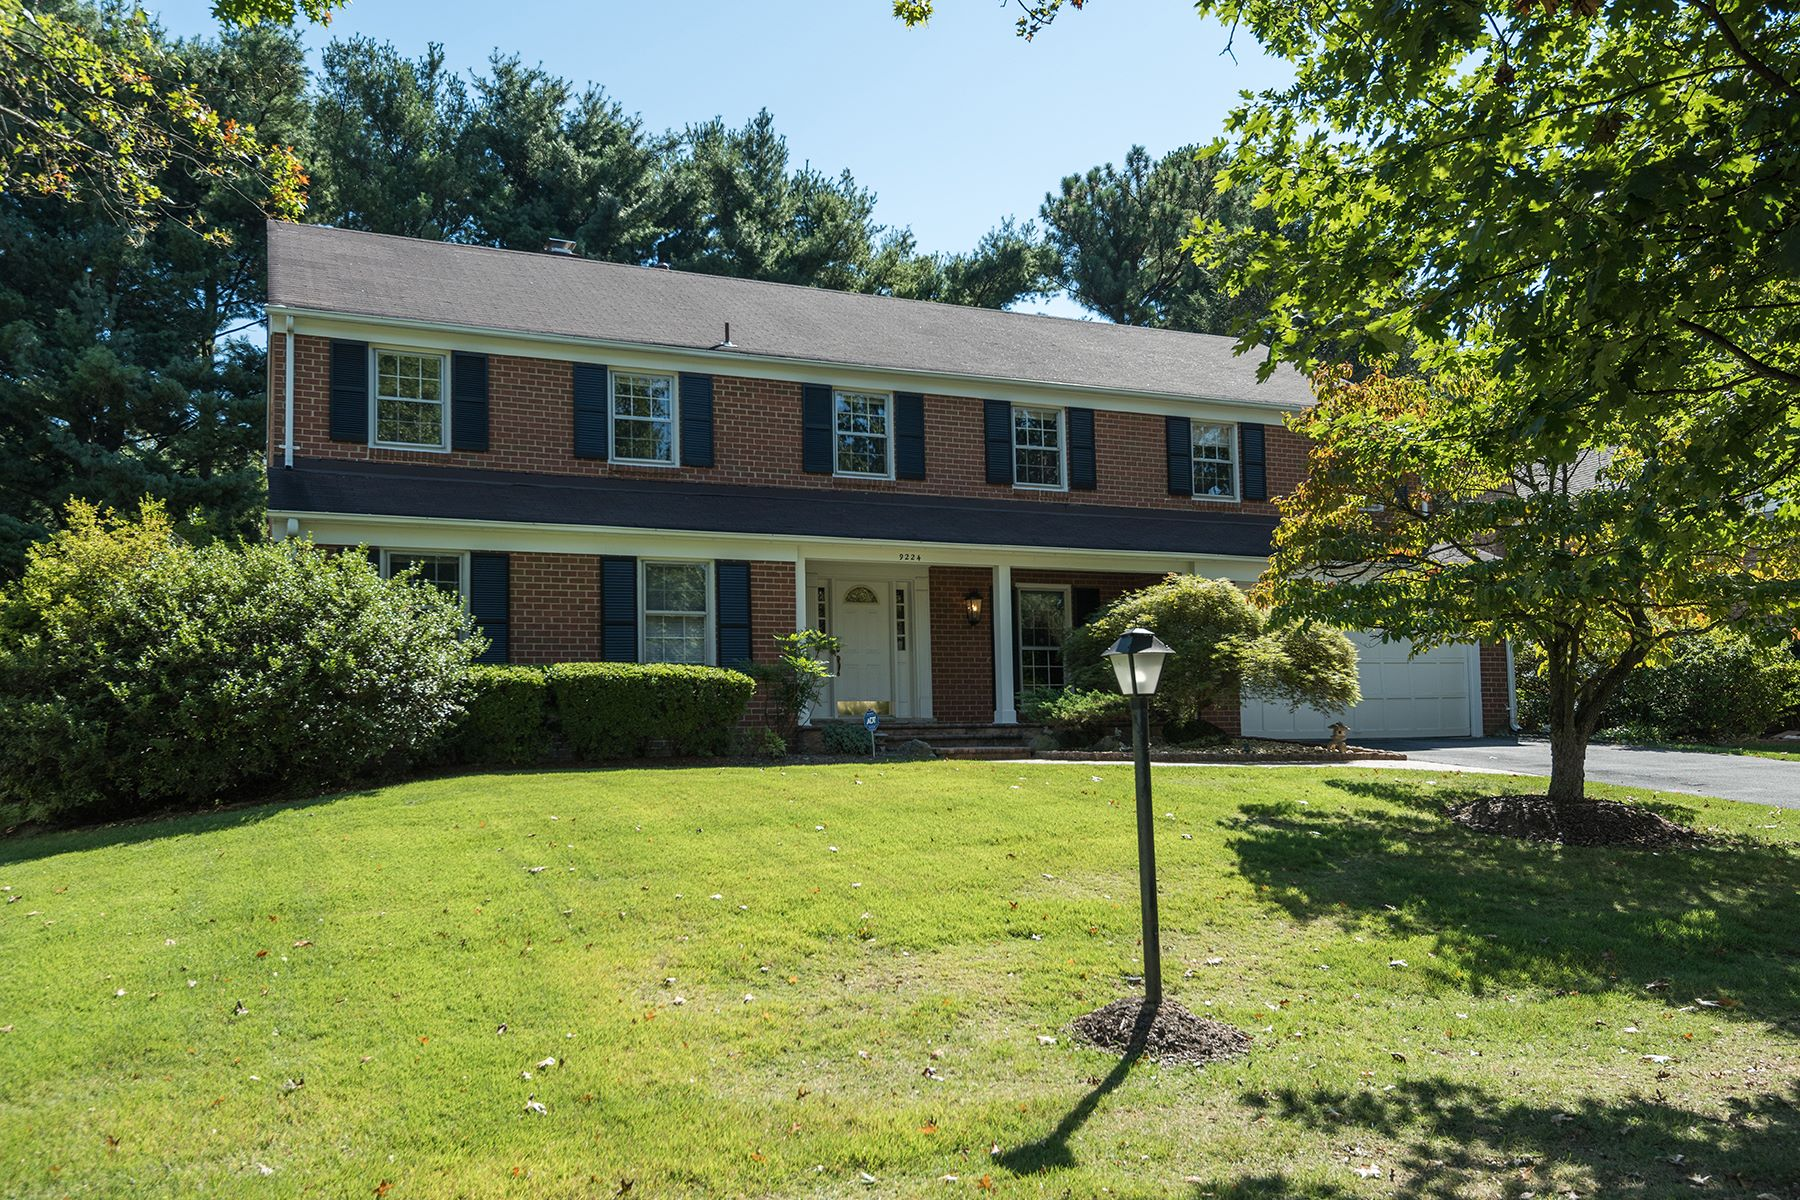 Additional photo for property listing at 9224 Falls Chapel Way, Potomac  波托马克, 马里兰州 20854 美国